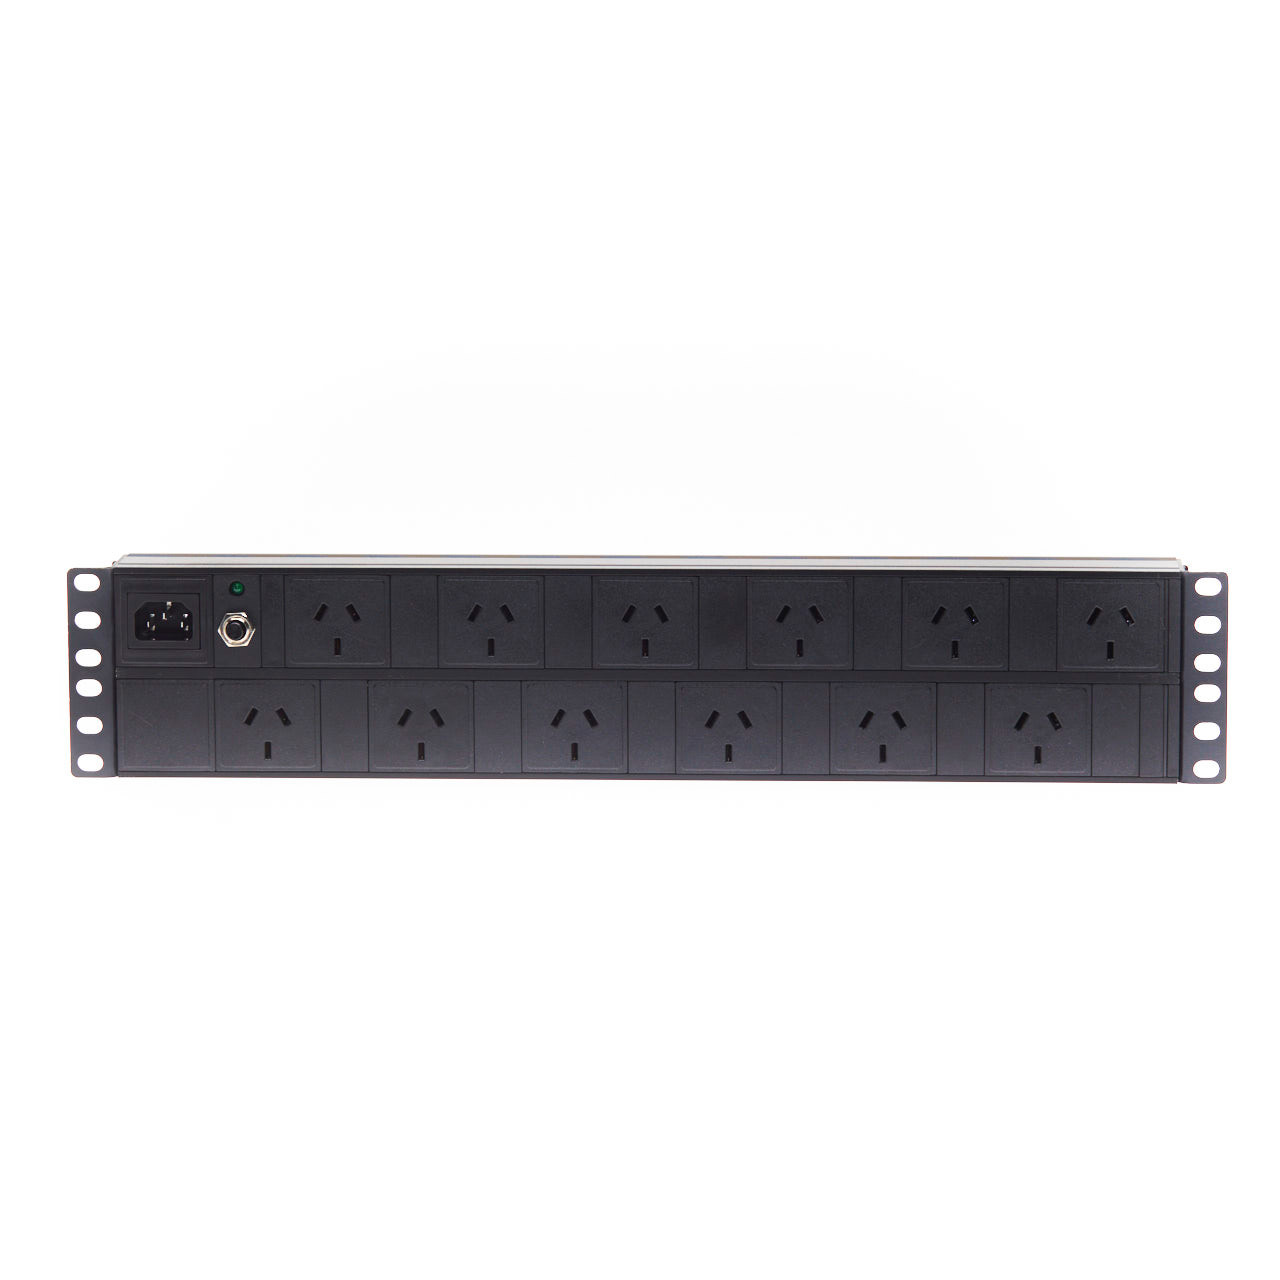 Image for 2RU 12 Way GPO Horizontal Rack Mount PDU Power Rail CX Computer Superstore